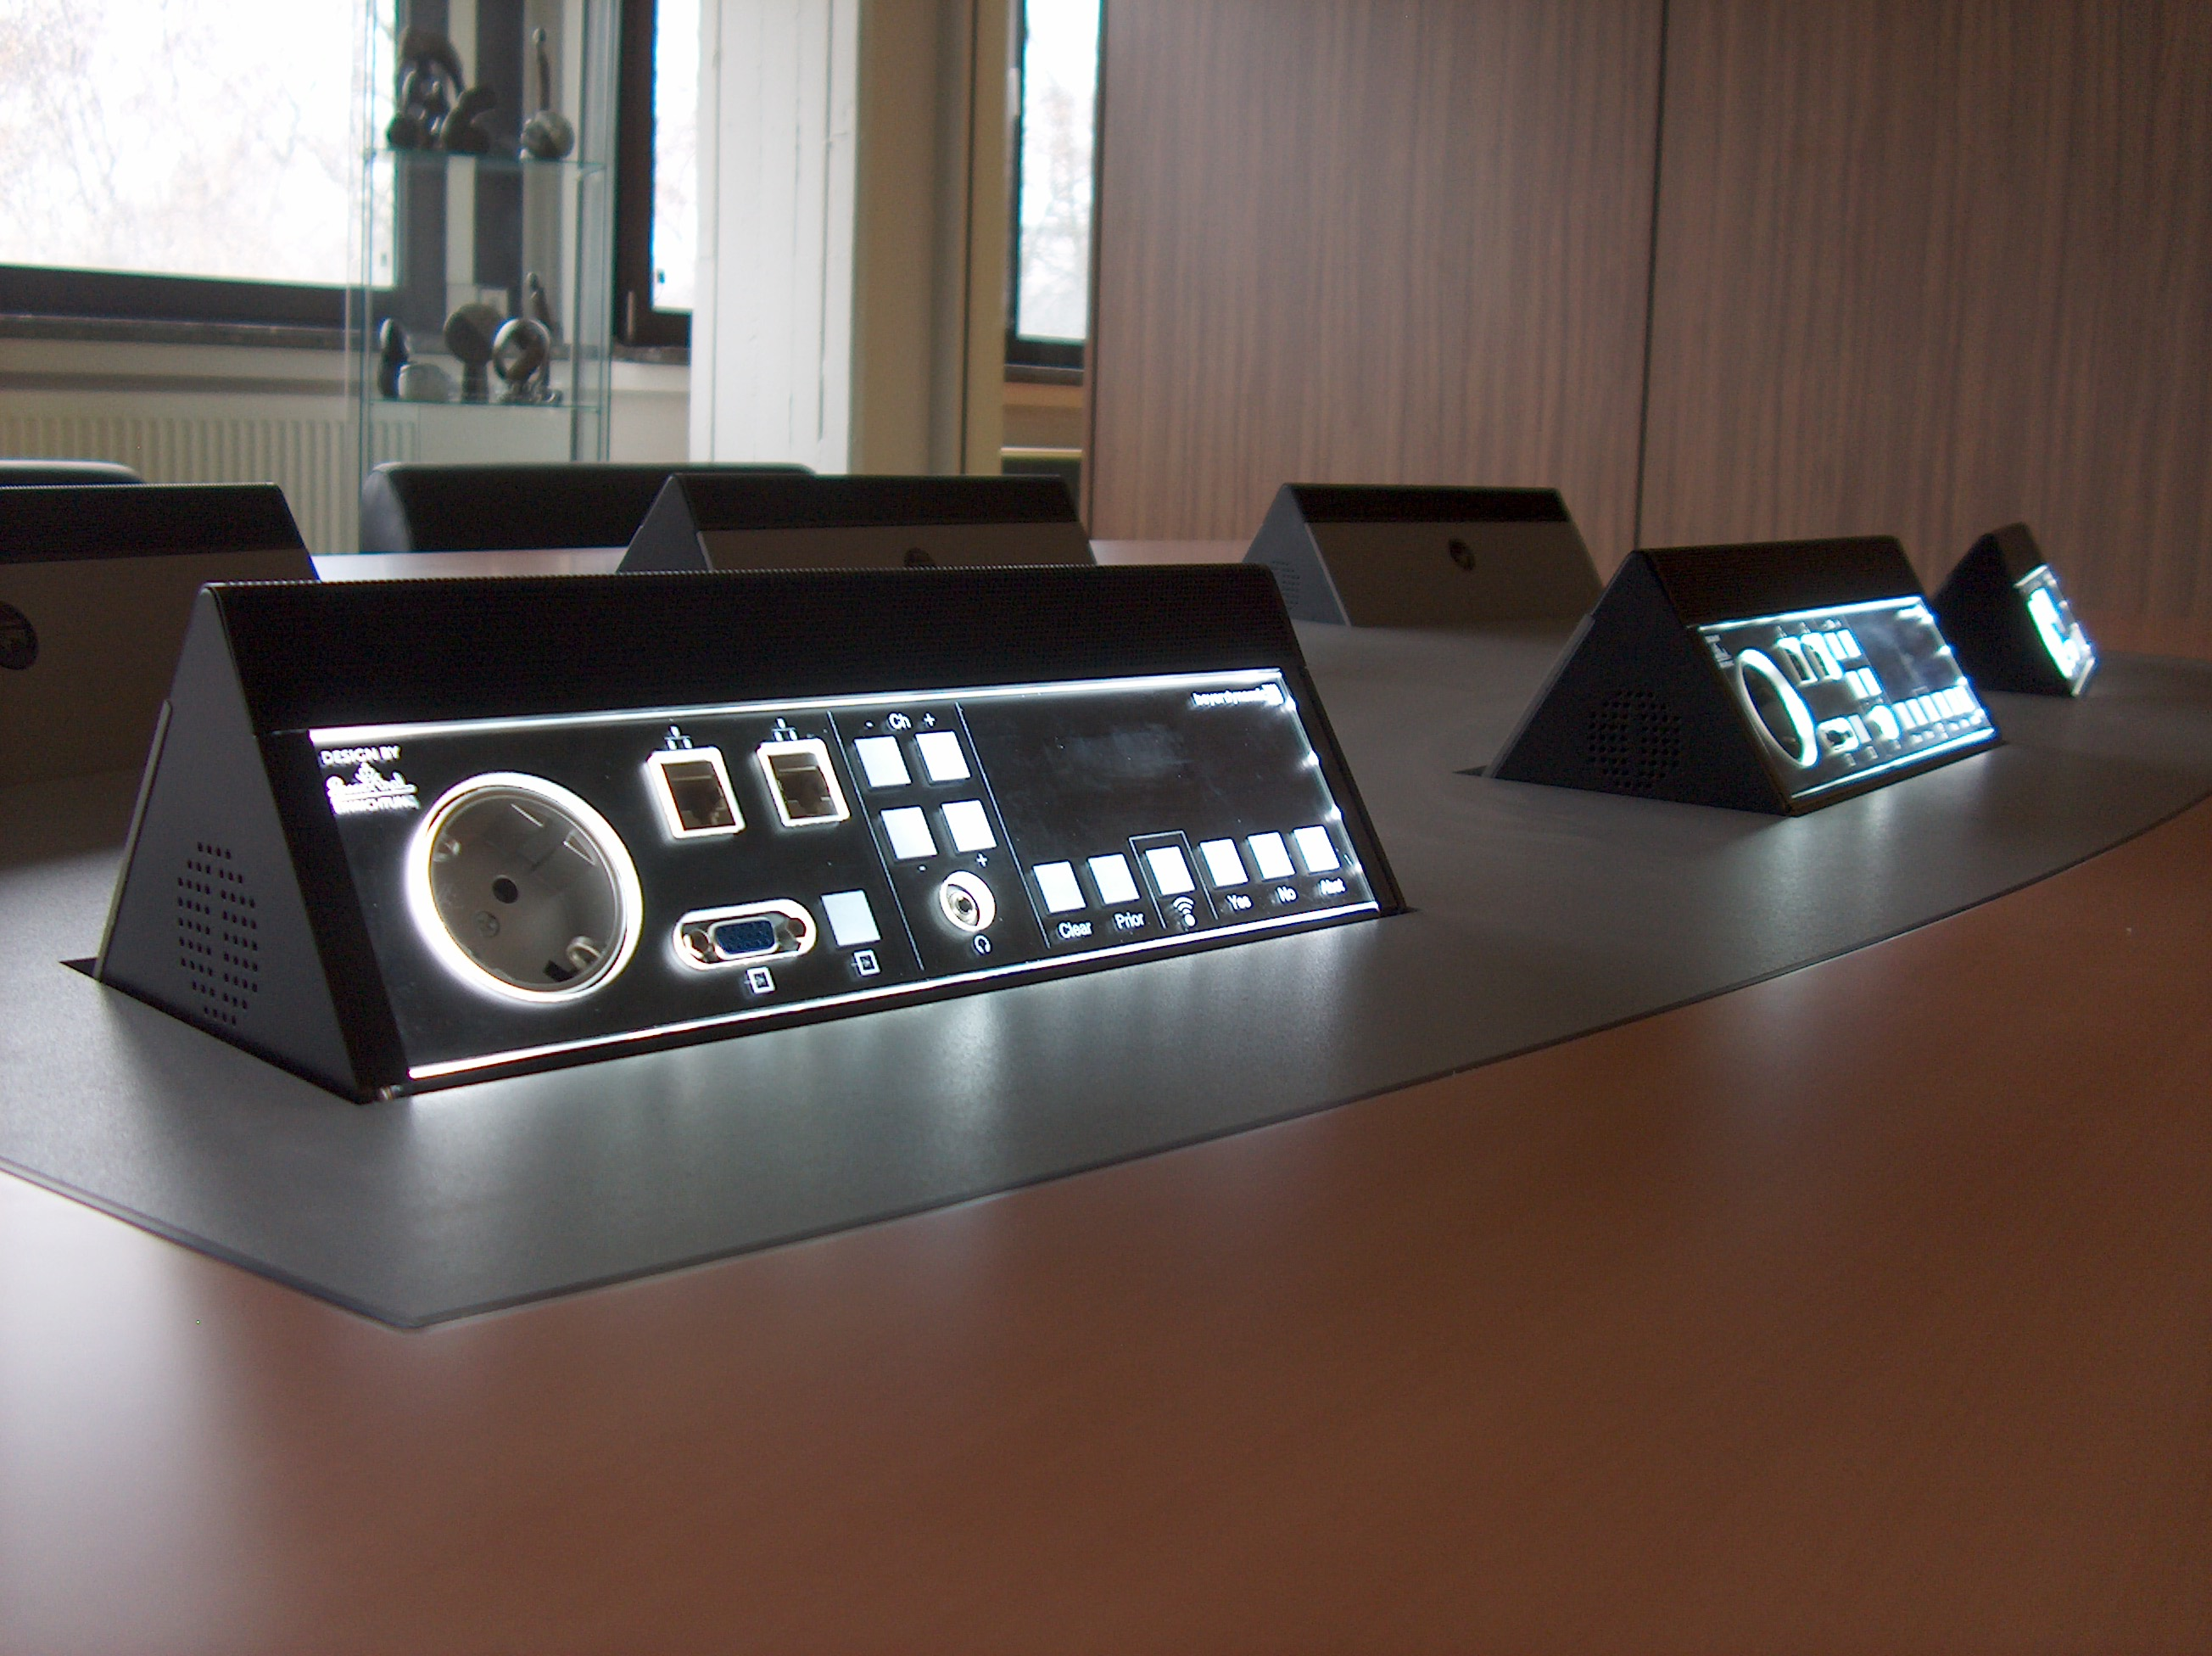 Audiovision control systems viscon dekonferenz und medientechnikdeenmedia and conference technologyen freerunsca Images